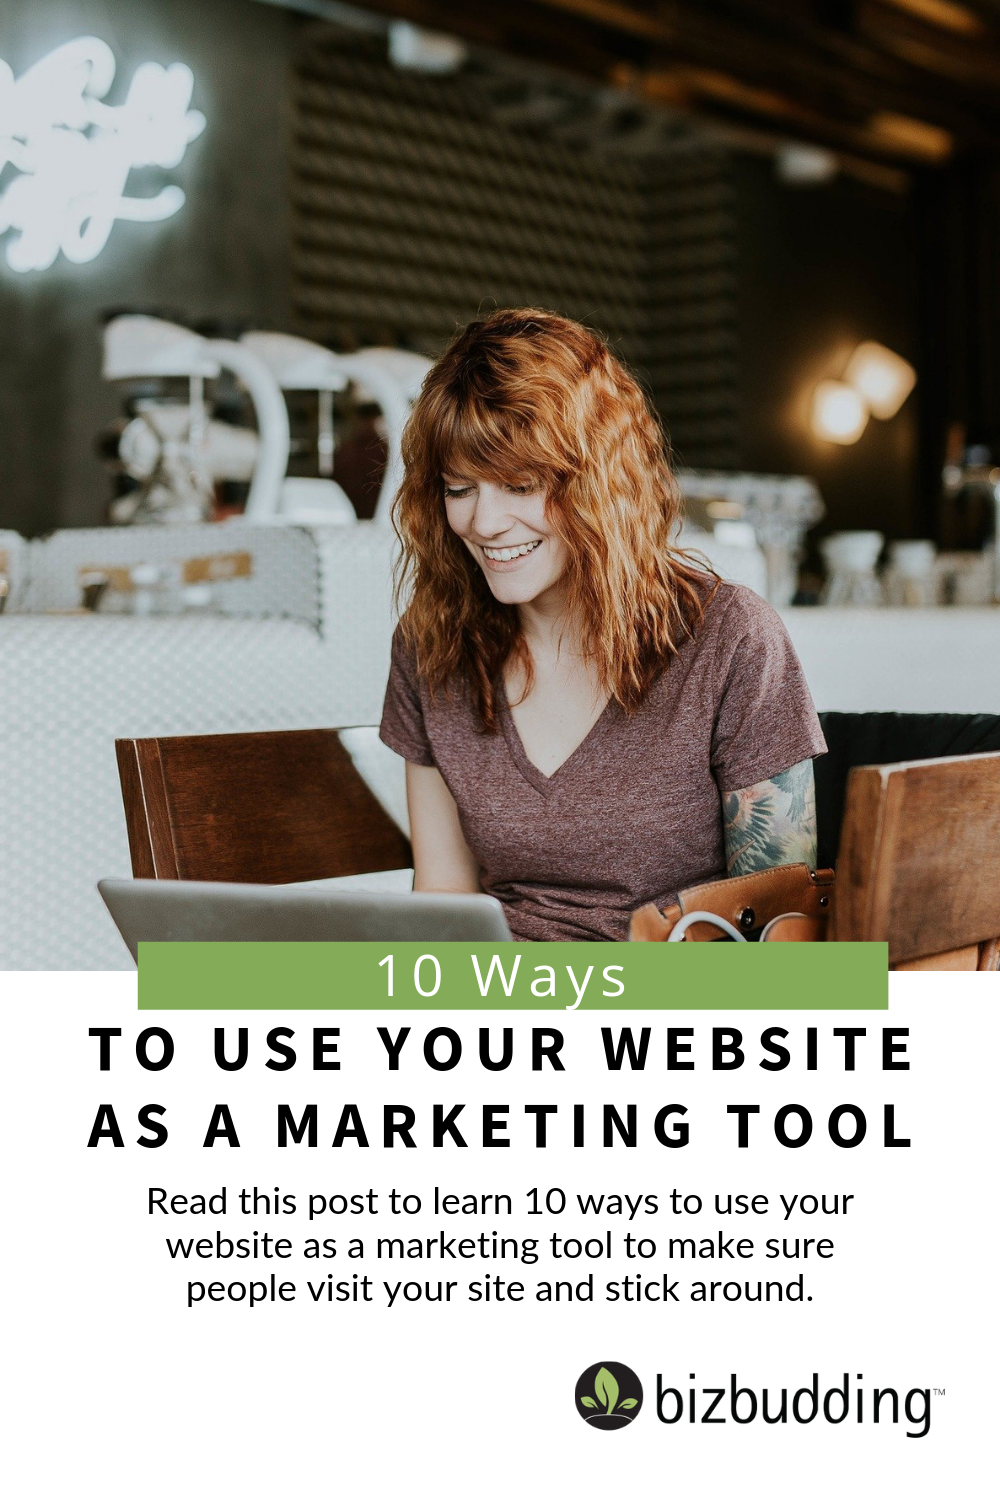 pinterest image for 10-ways-use-website-marketing-tool